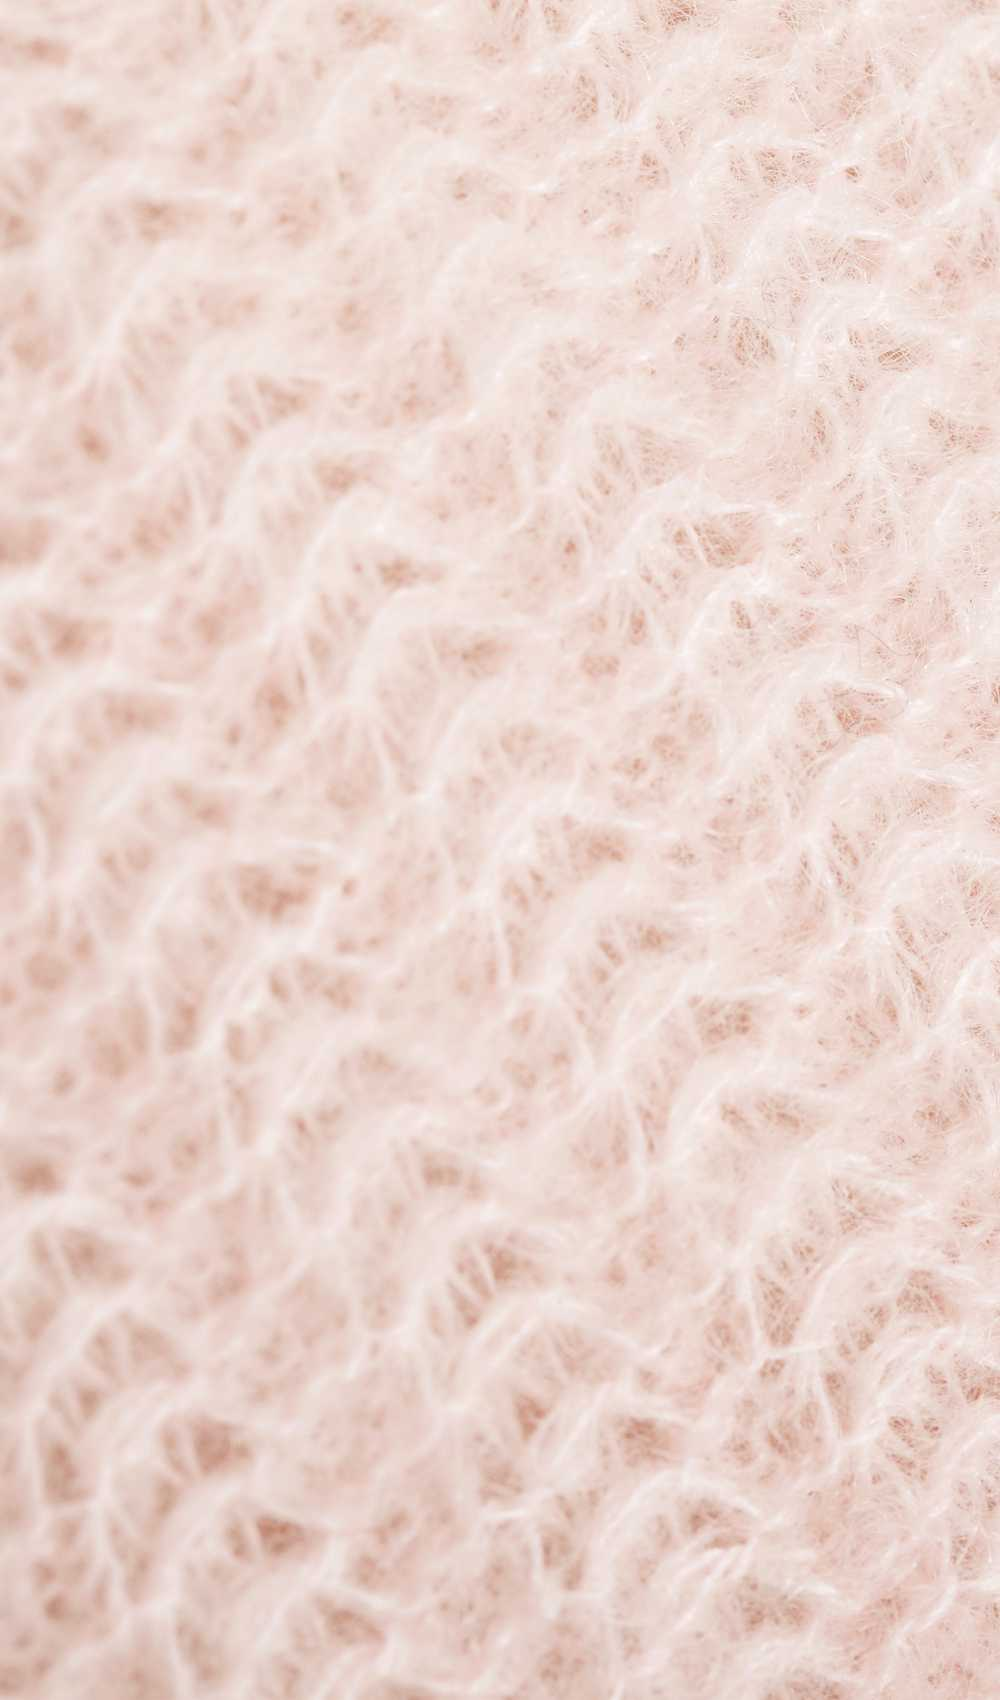 Details of the Knit